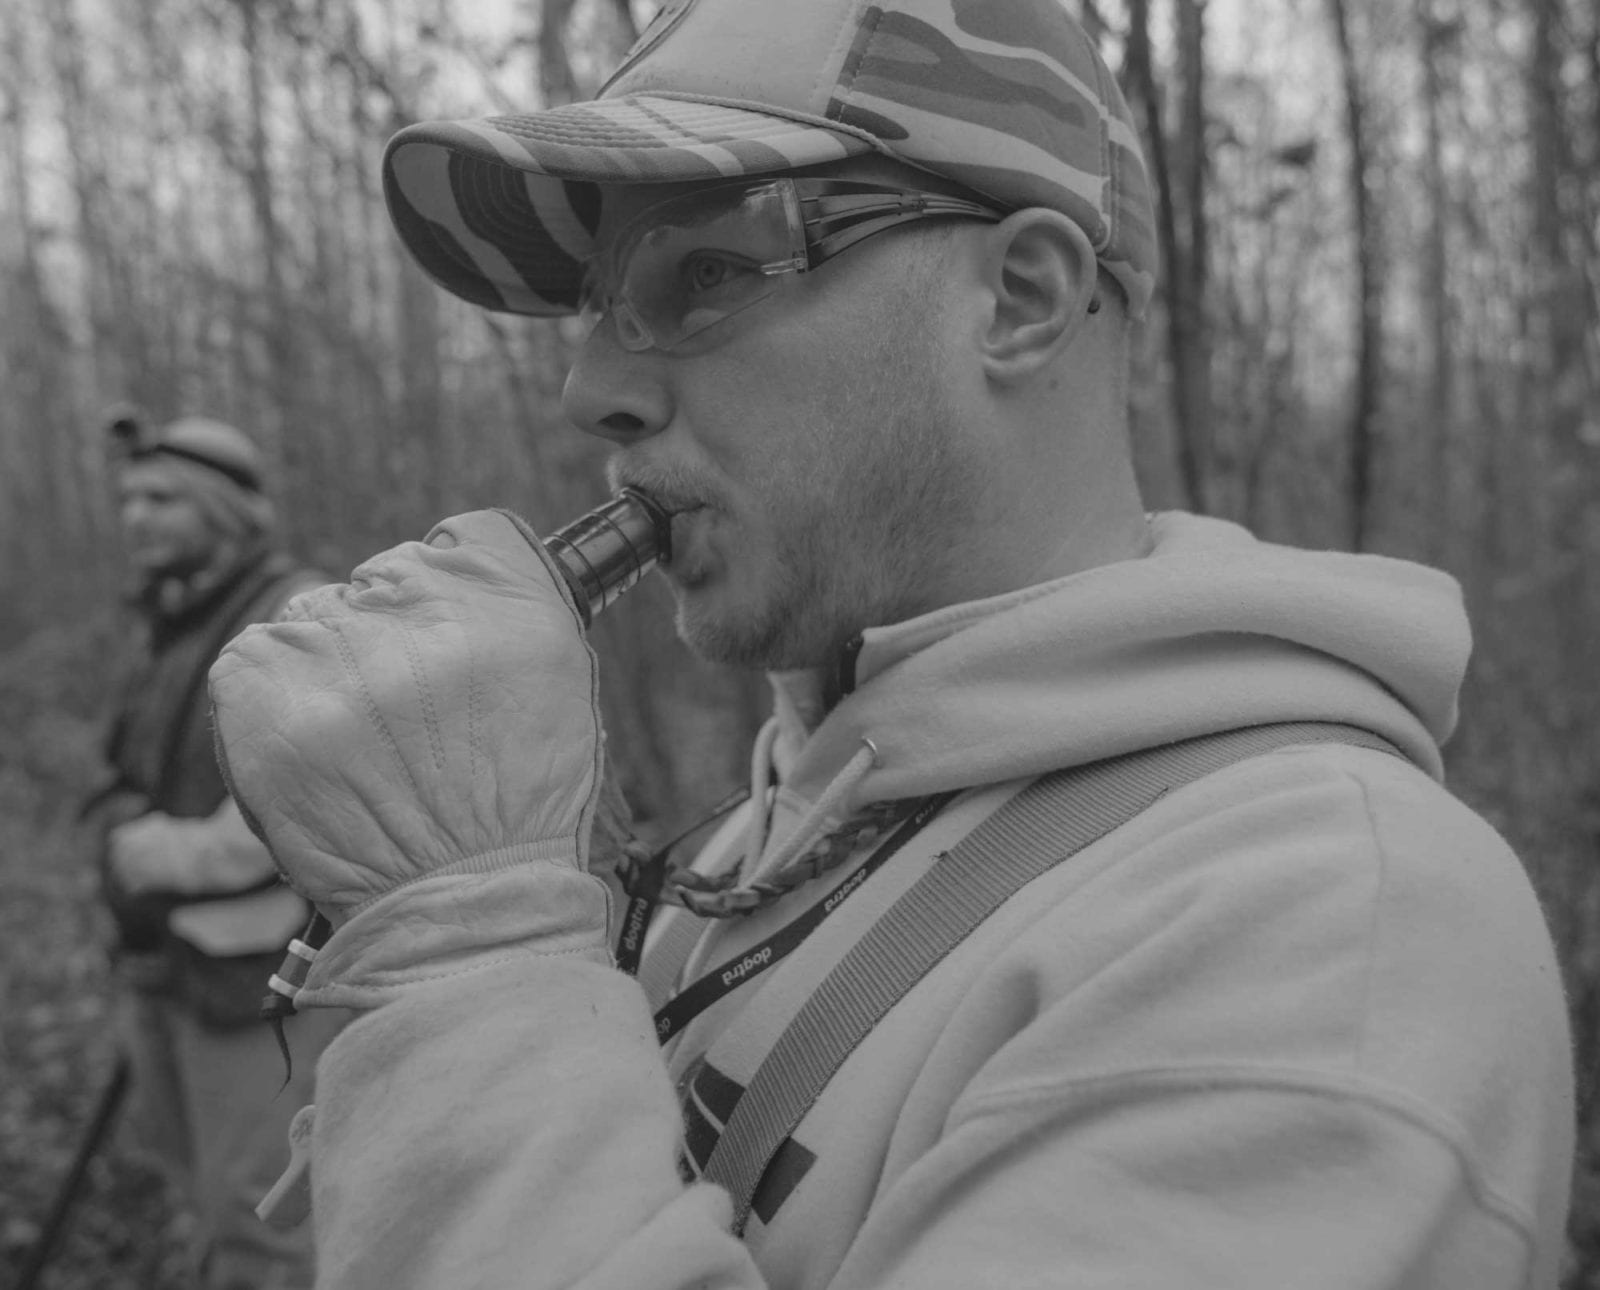 Adam and Aaron Regier of Modern Wild hunting grouse and woodcock.